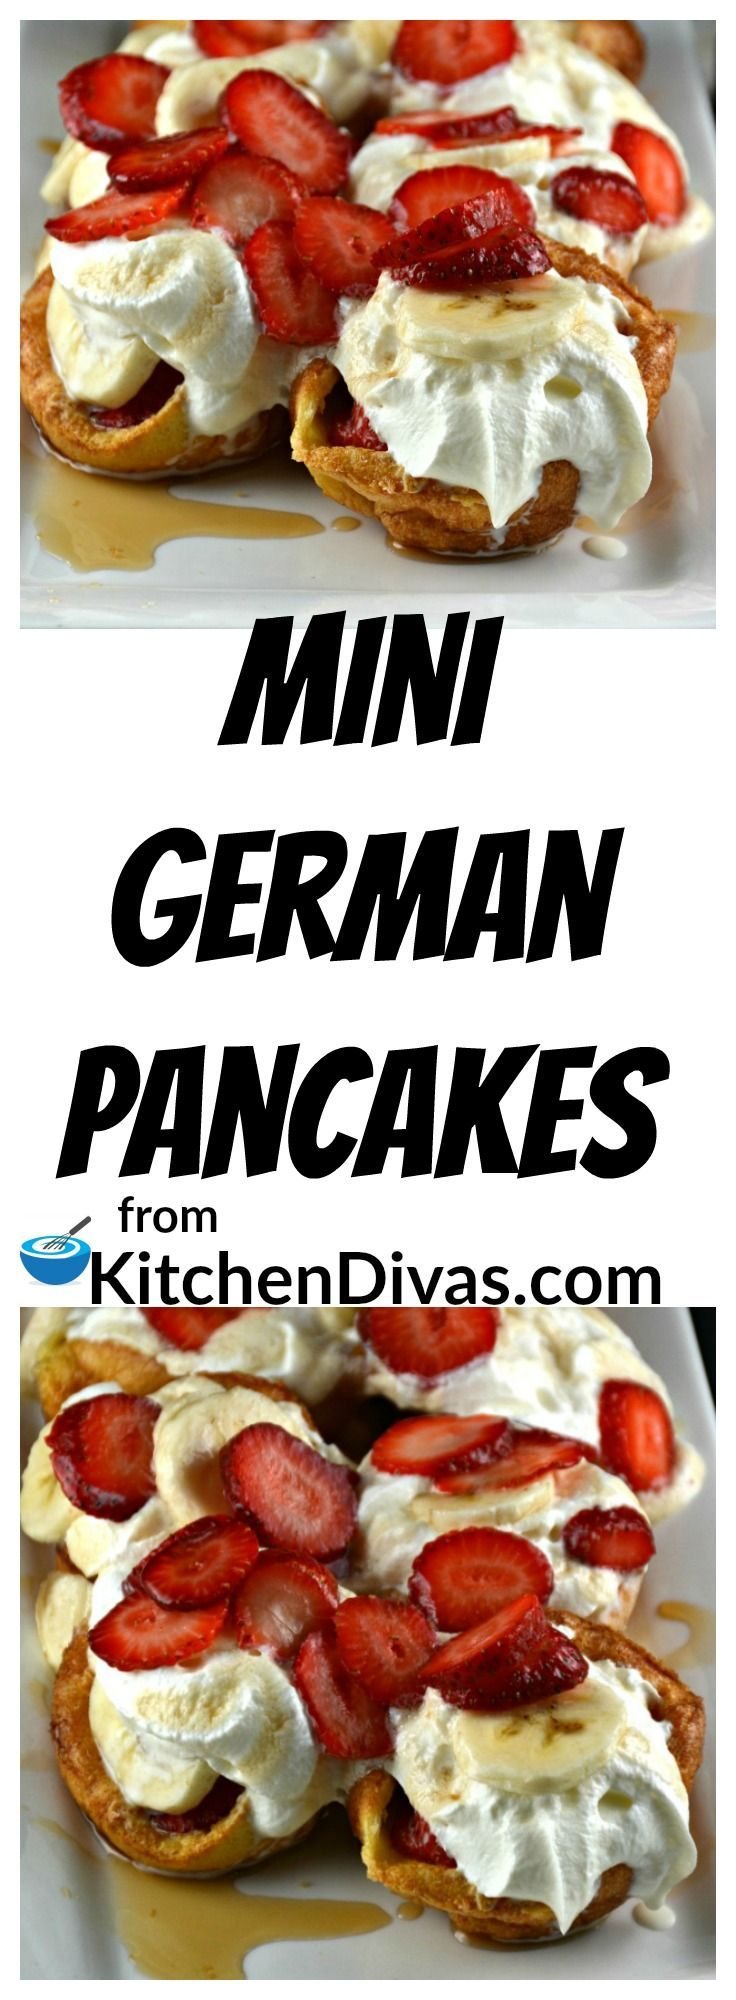 These Mini German Pancakes are so yummy! They can be filled with anything your heart desires! Our favorite is strawberries, bananas, whipped cream and syrup! We have filled them with some nutella or chocolate chips and bananas, just chocolate chips, sausages and syrup, all kinds of different fruit and even just plain old butter and syrup. The possibilities are truly endless! That's what makes this recipe so amazing!